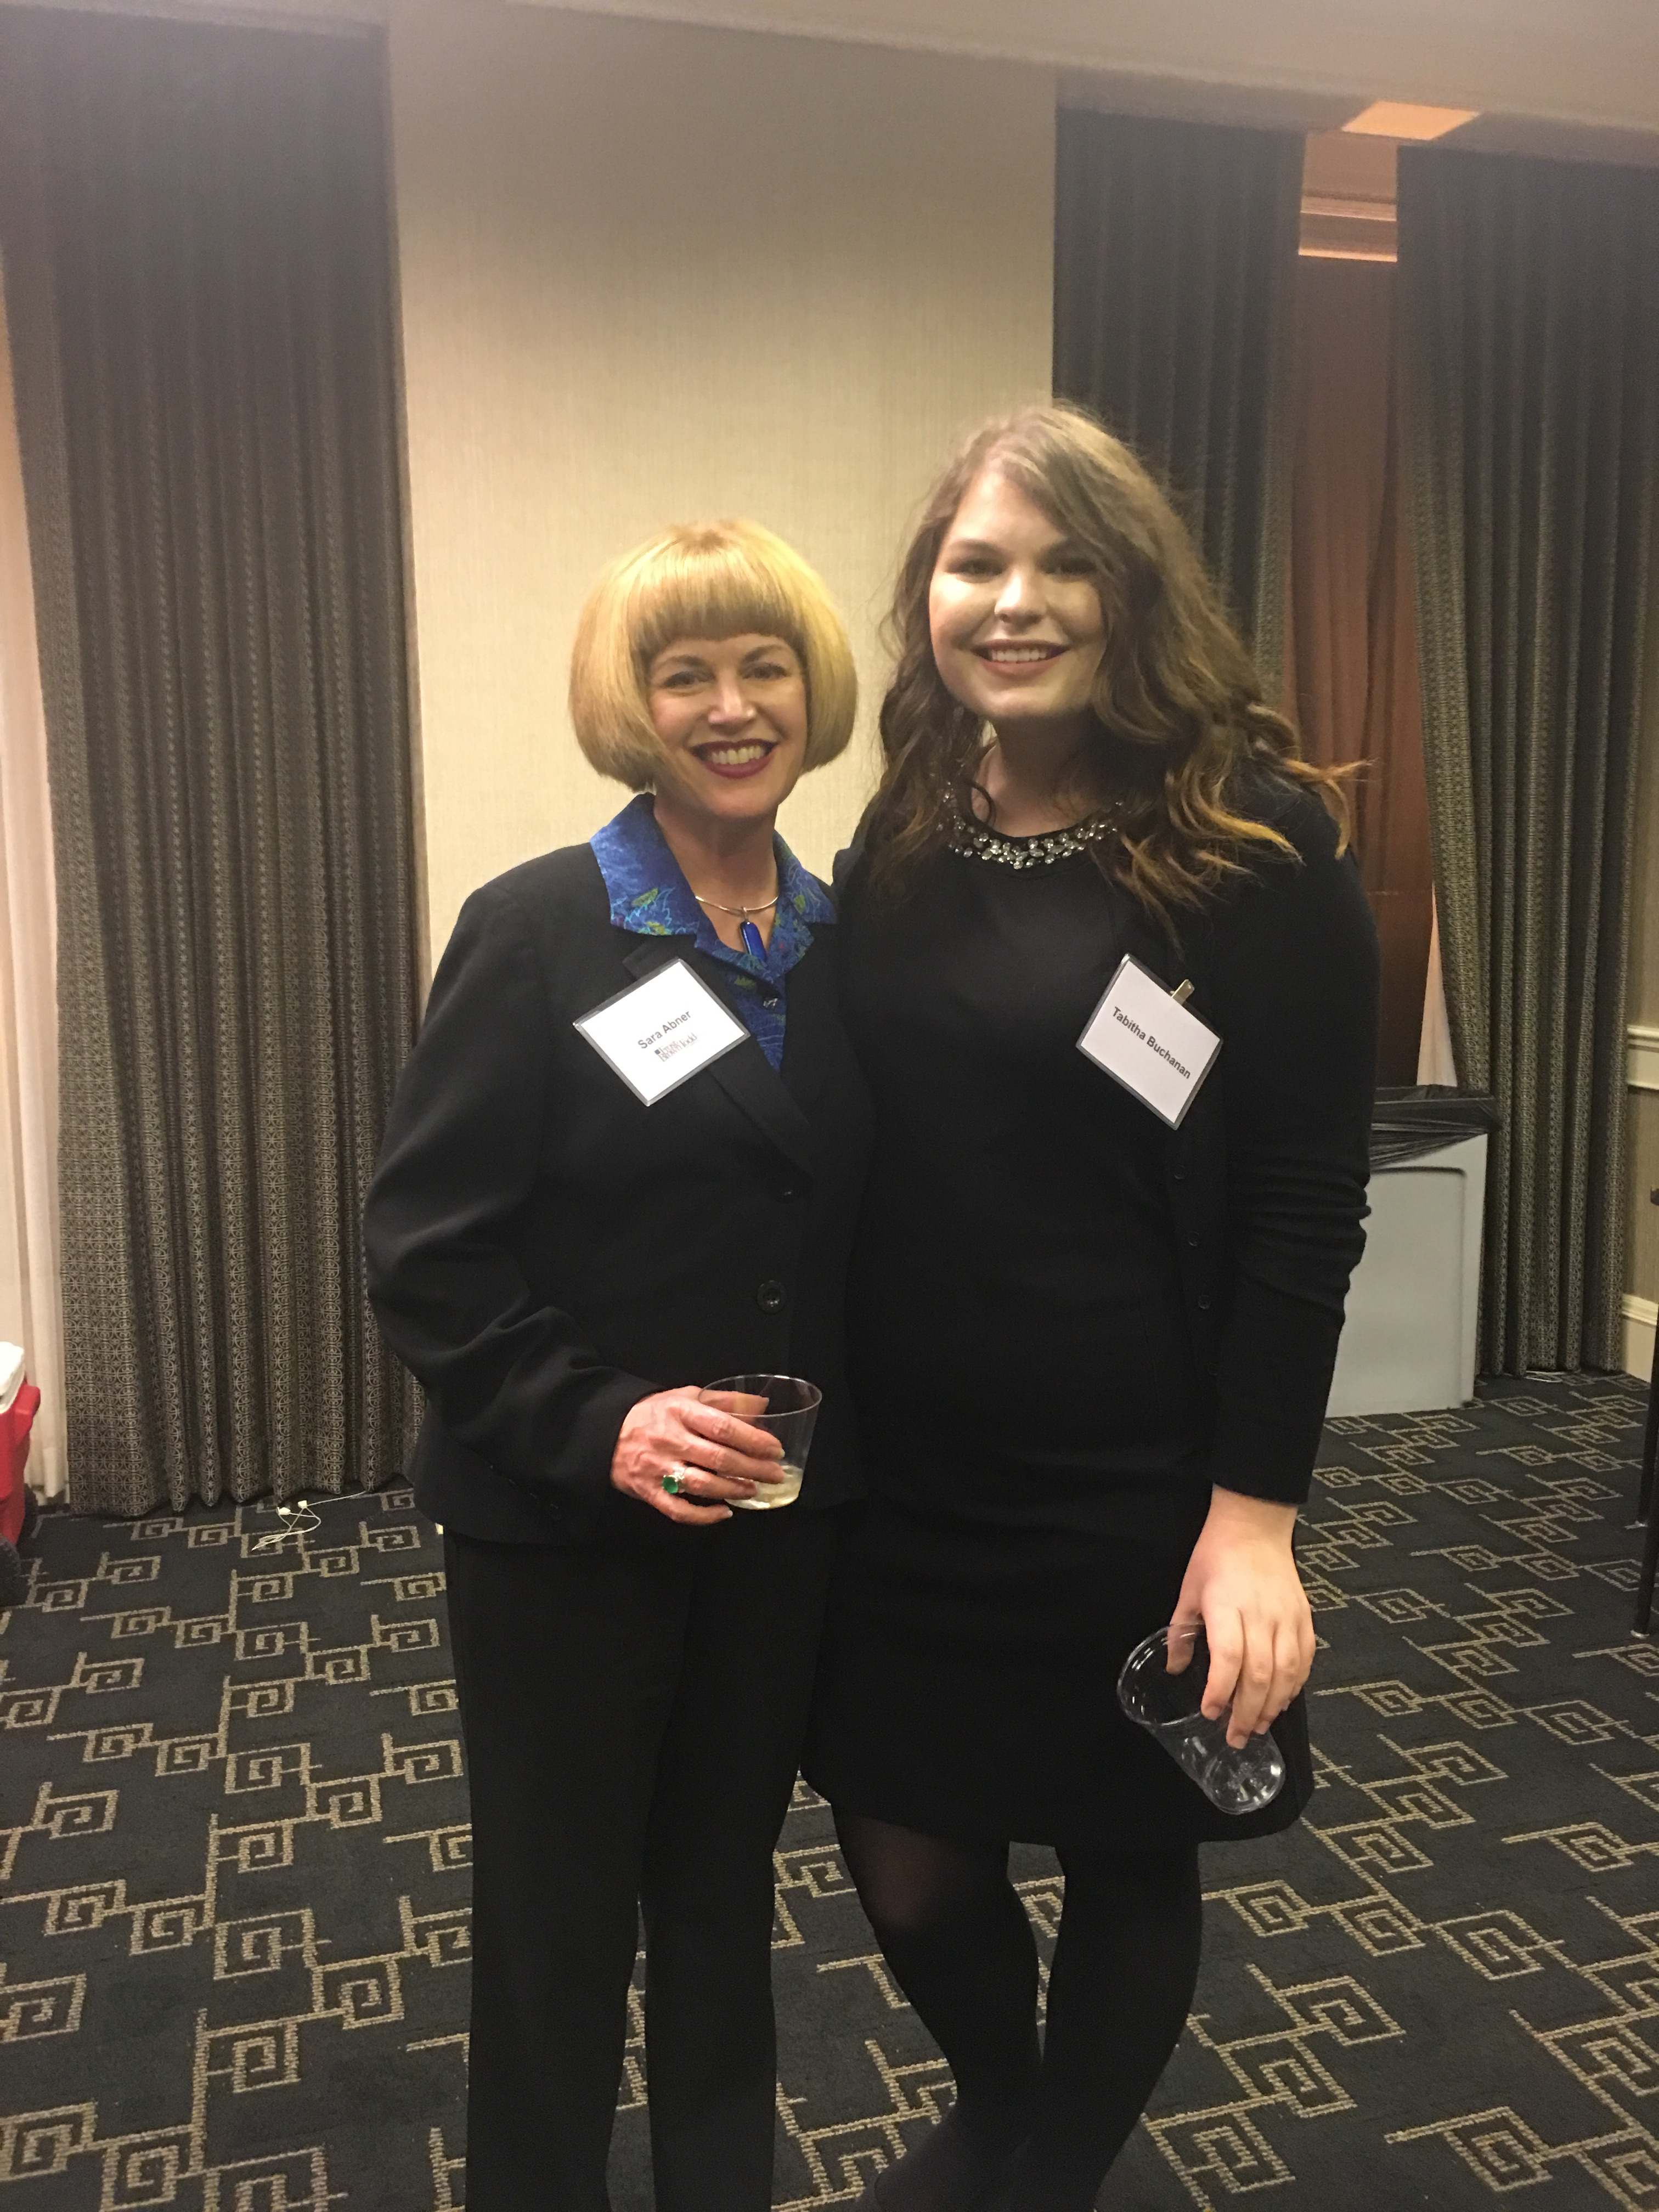 Brandeis Law students mingle with local legal professionals